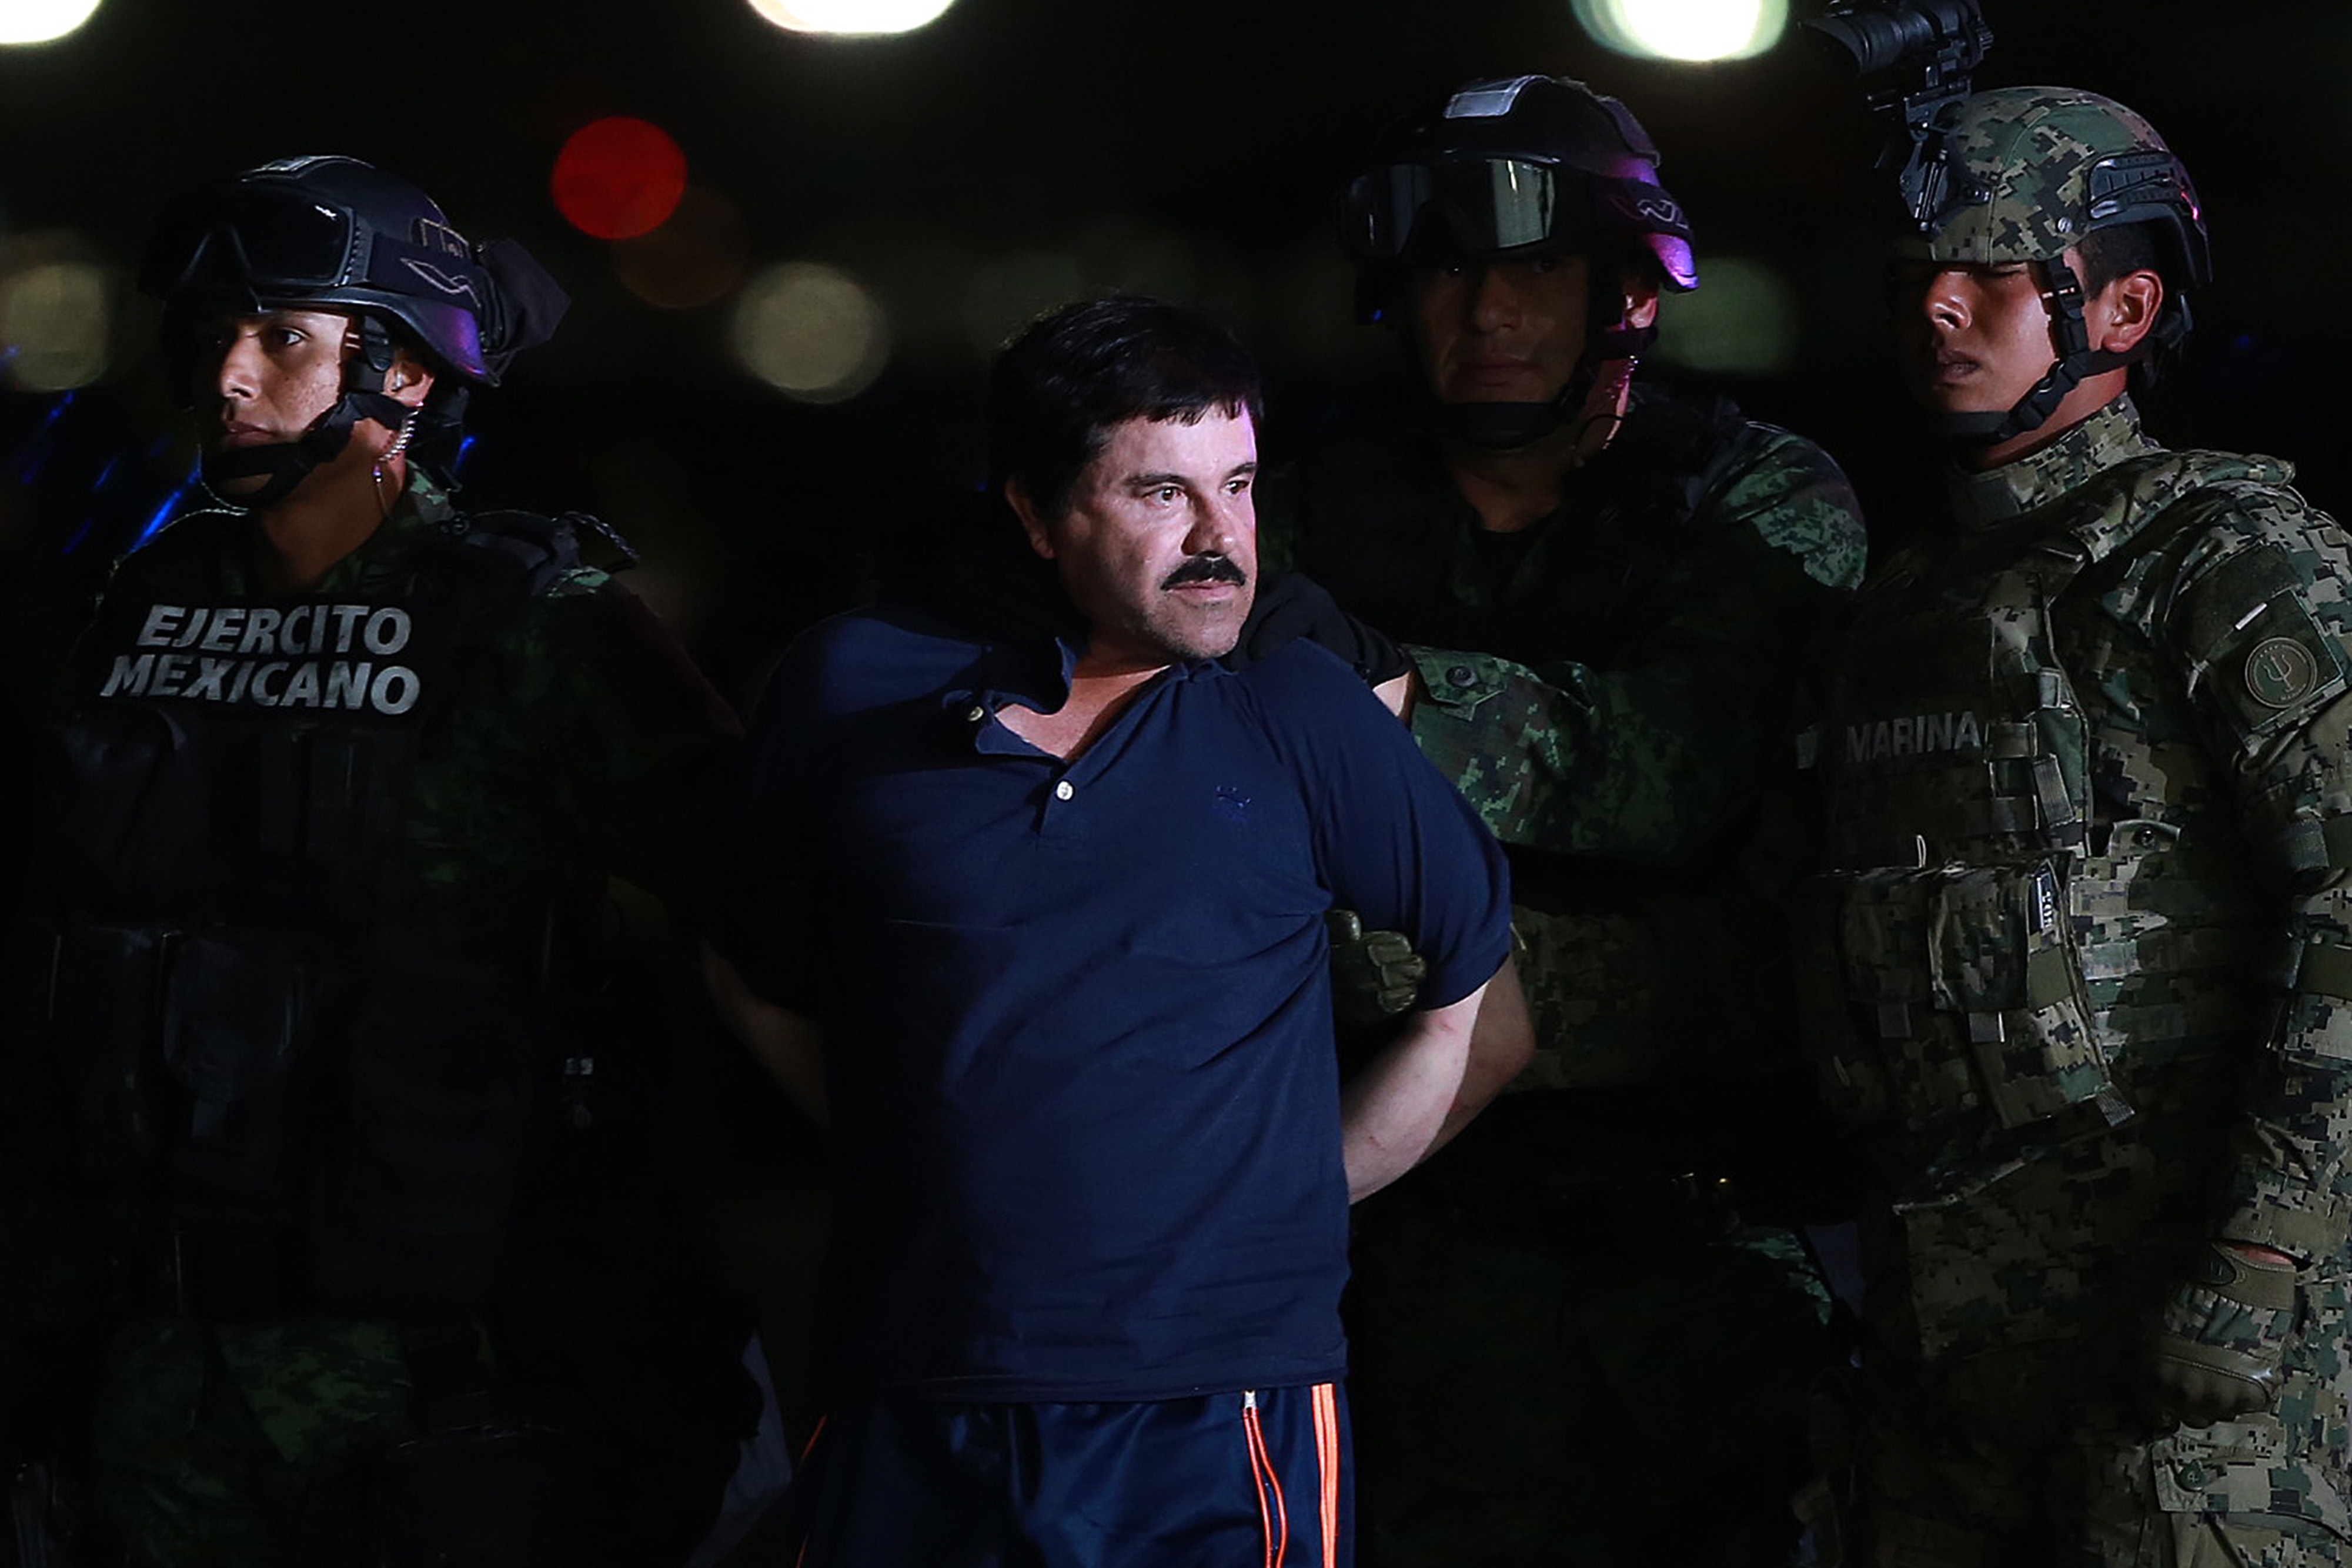 Joaquin Guzman, the world's most wanted-drug trafficker, center, is escorted by Mexican security forces at a Navy hangar in Mexico City, Mexico, on Jan. 8, 2016.